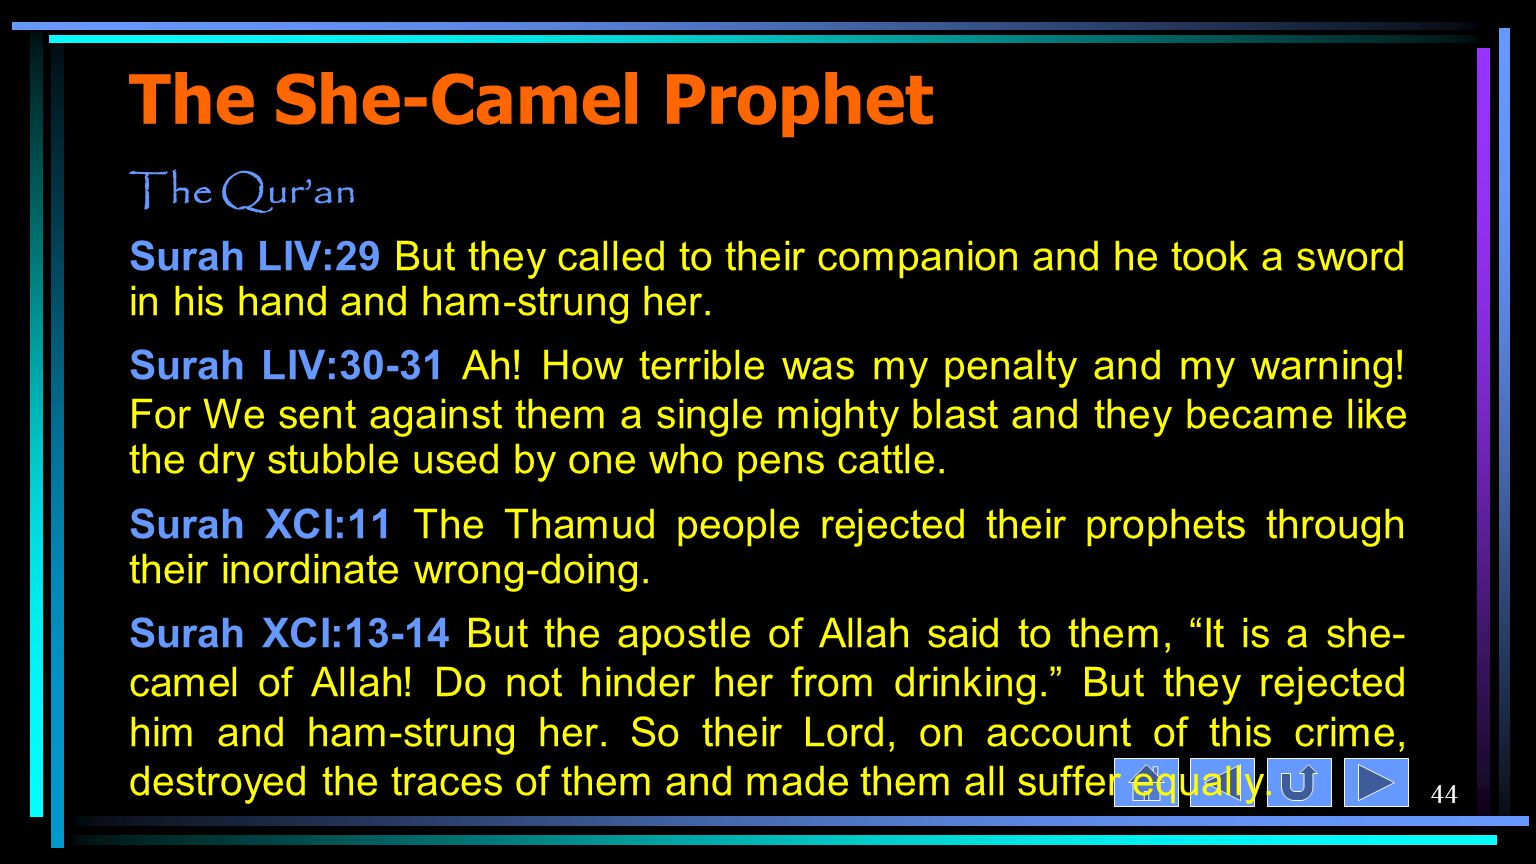 44 The She-Camel Prophet The Qur'an Surah LIV:29 But they called to their companion and he took a sword in his hand and ham-strung her.